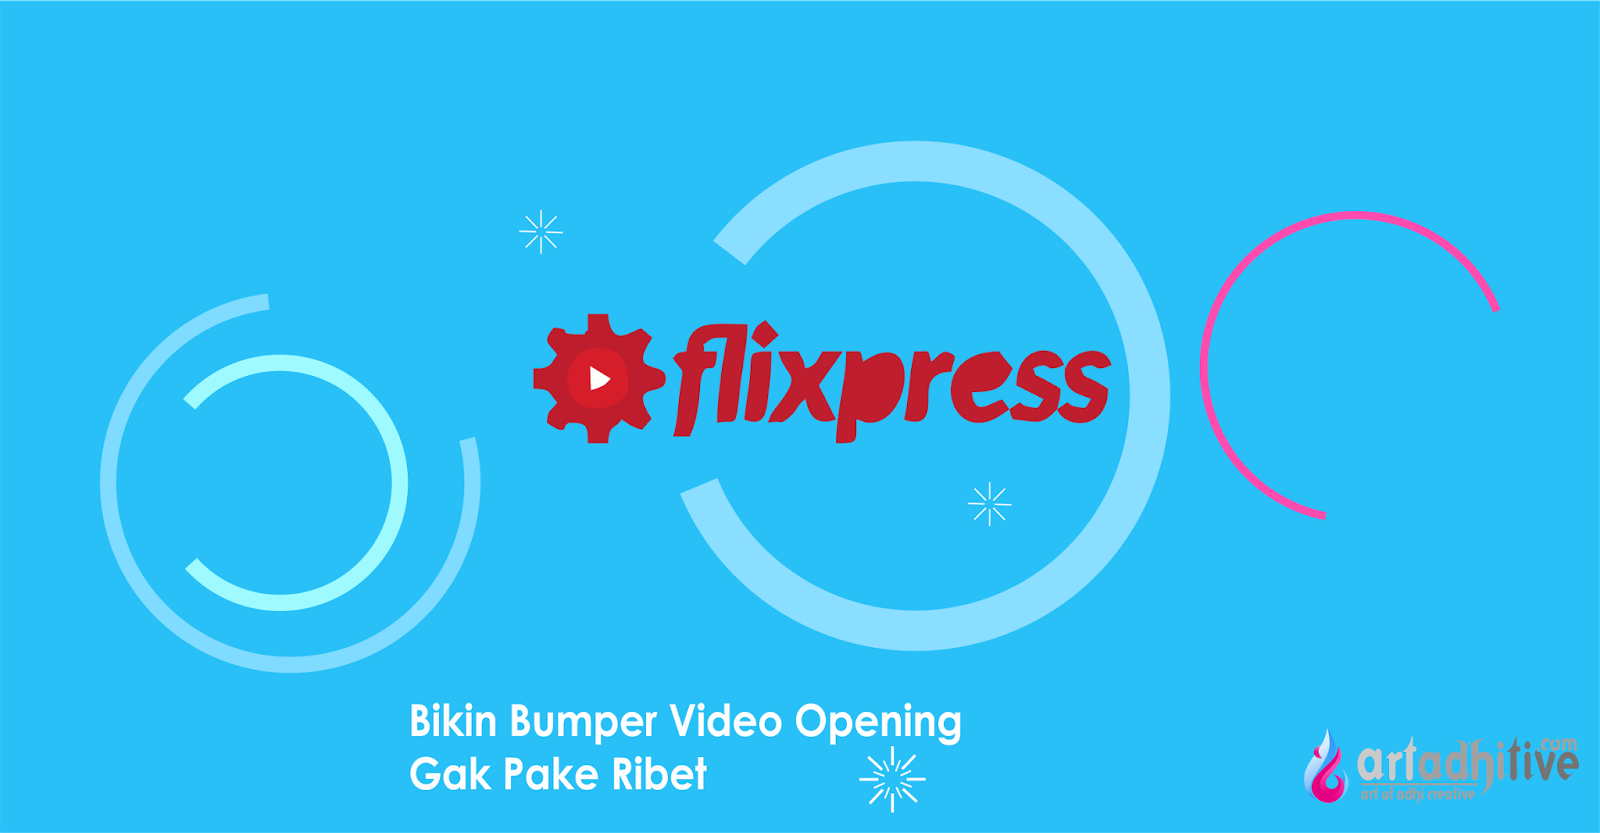 Flixpress bumper video opening